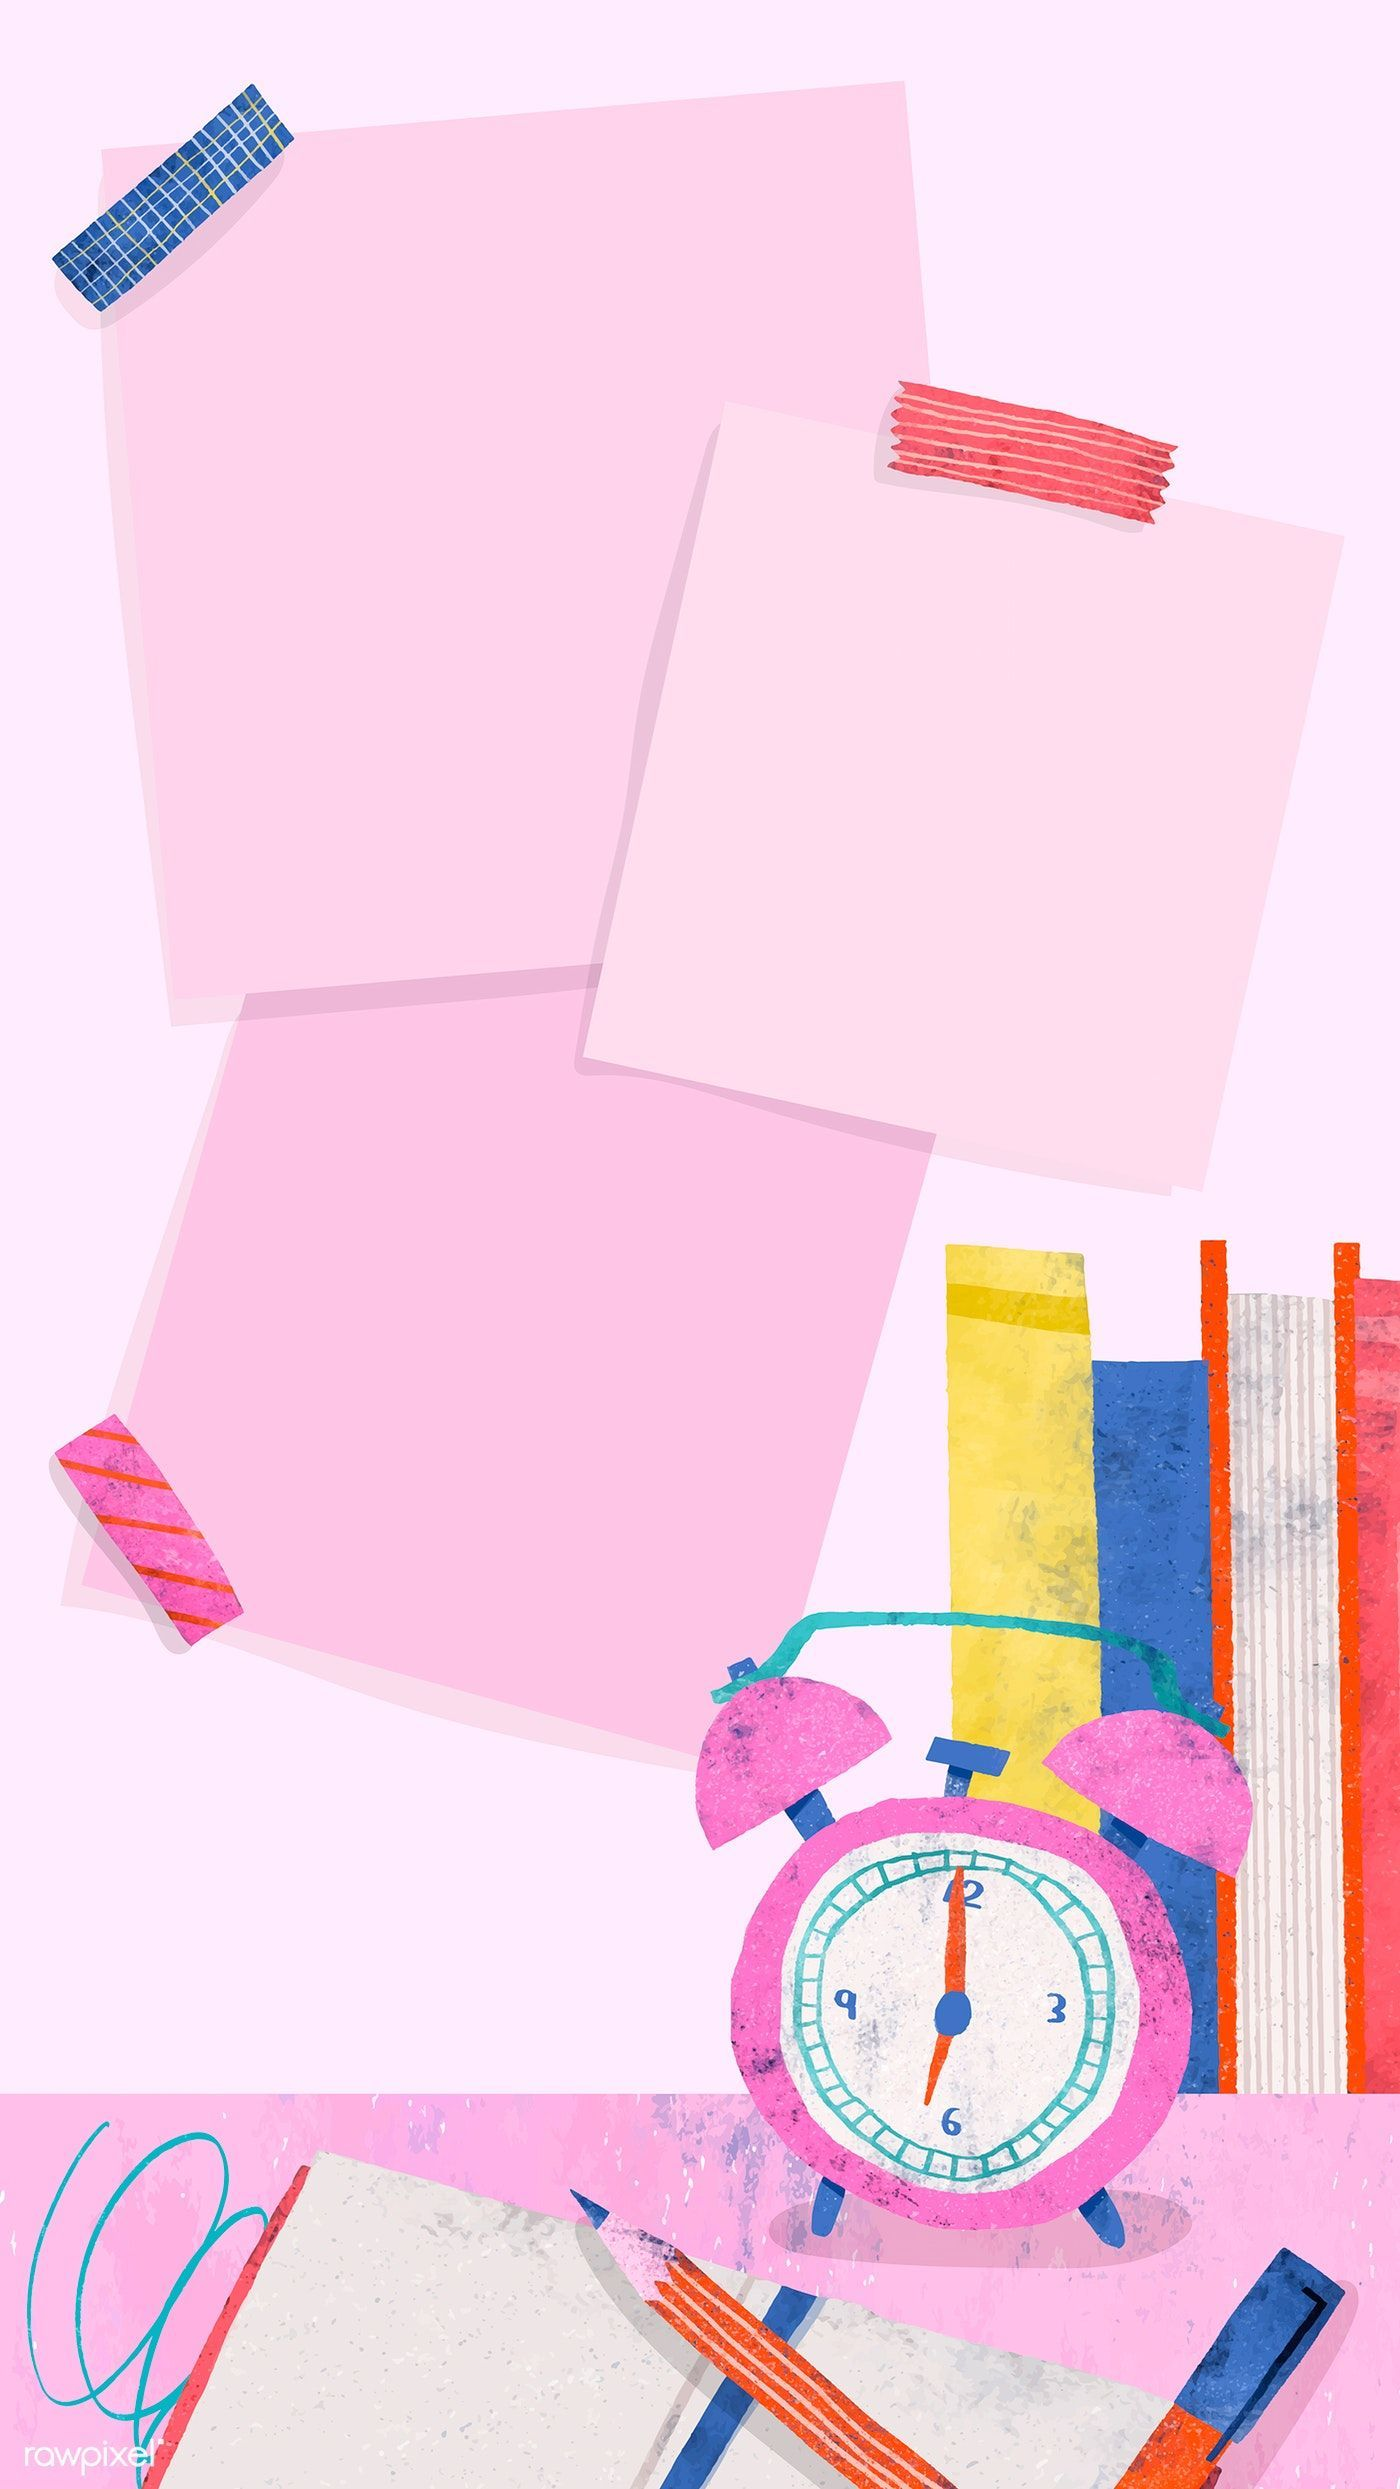 Blank pink back to school mobile phone wallpaper vector